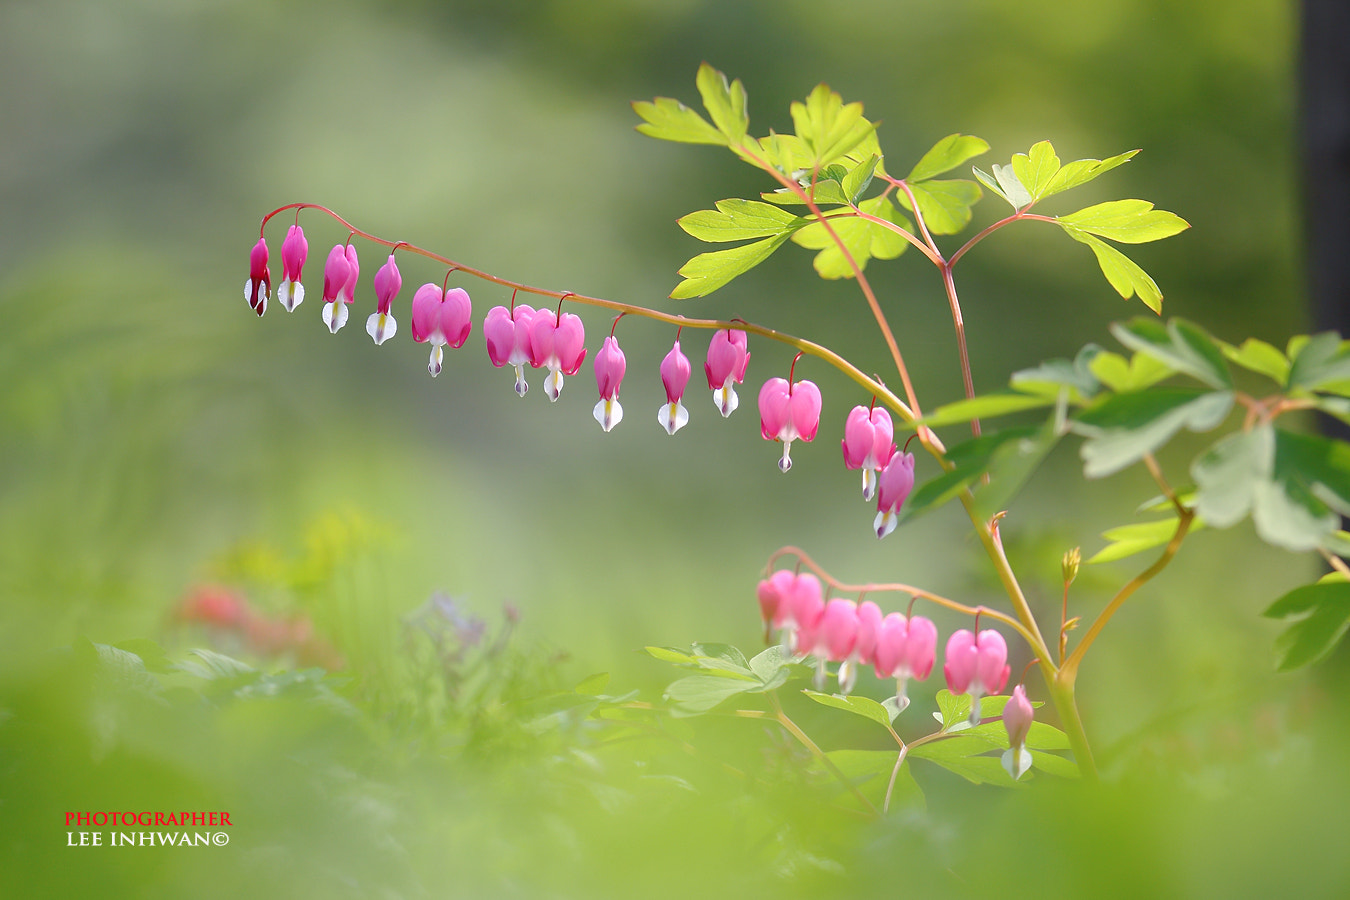 Photograph Misty mood bleeding hearts by LEE INHWAN on 500px